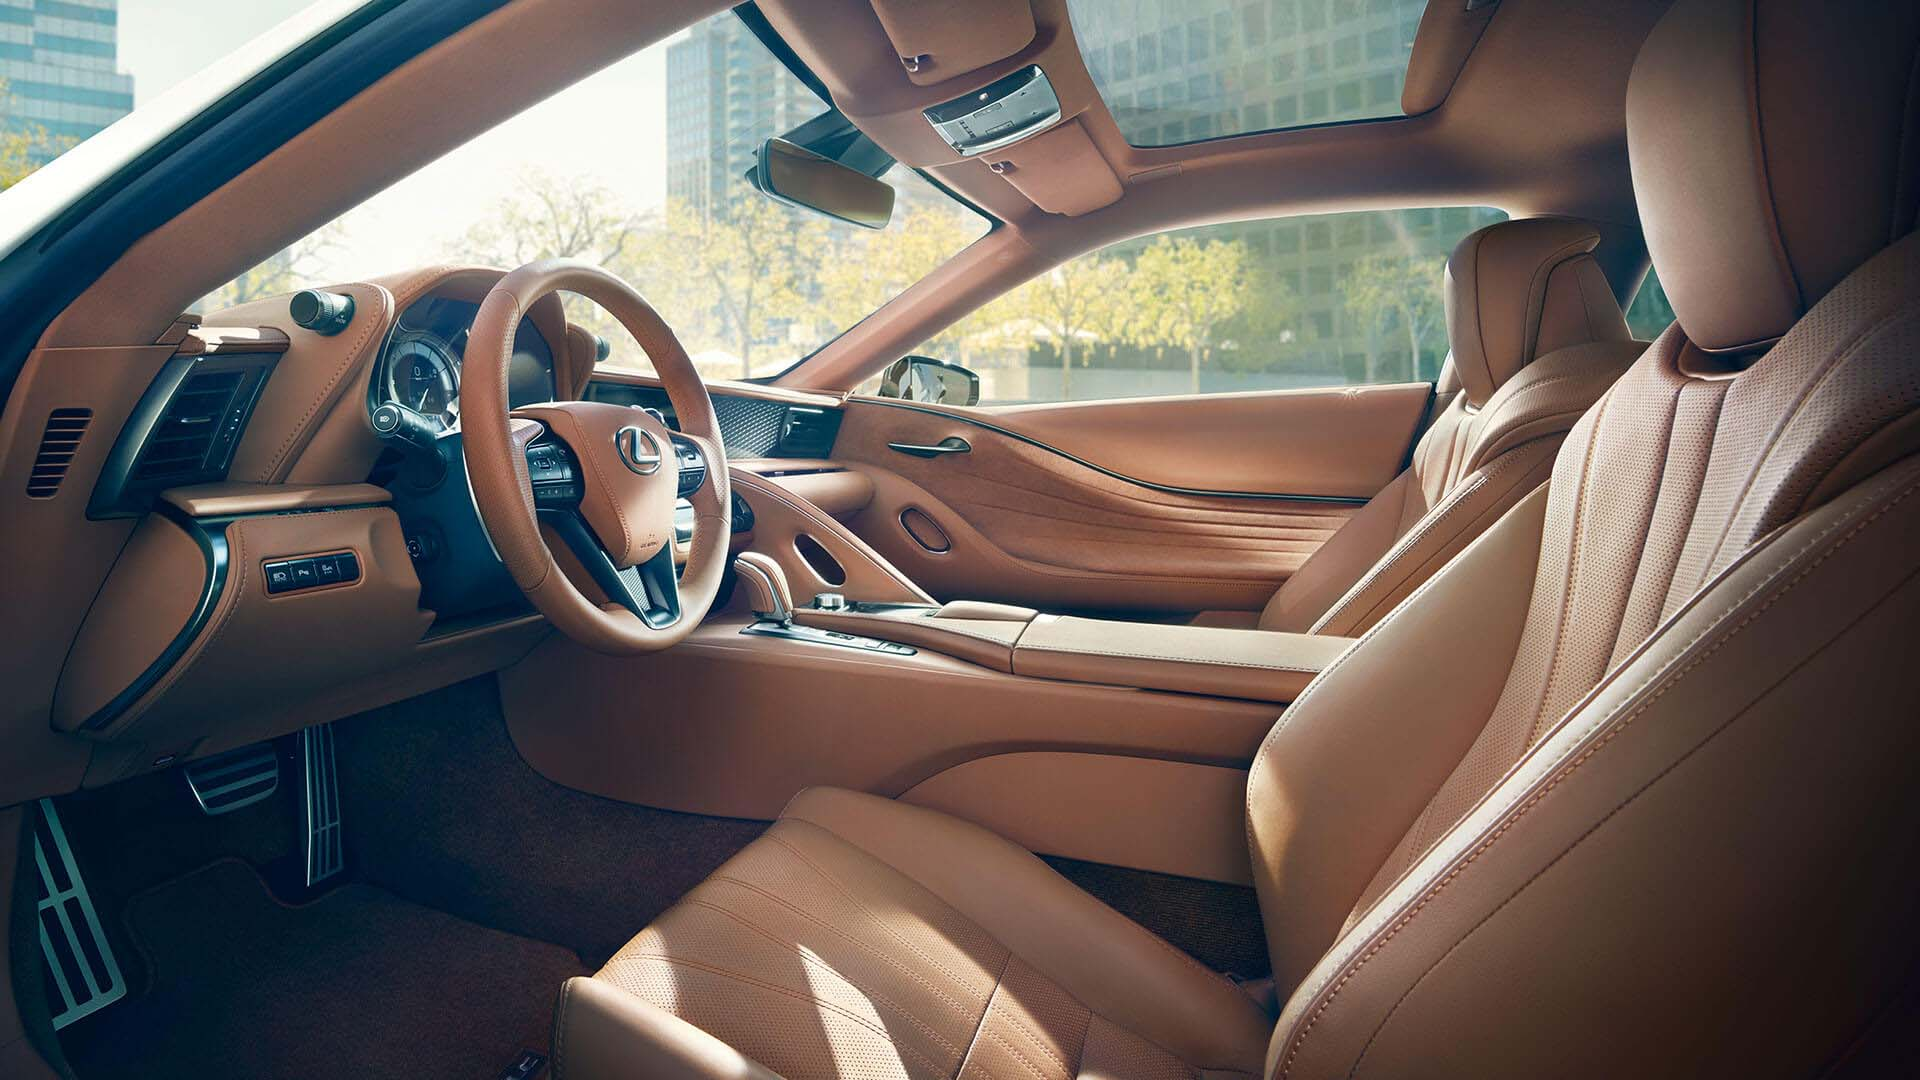 2017 lexus lc gallery 022 interior